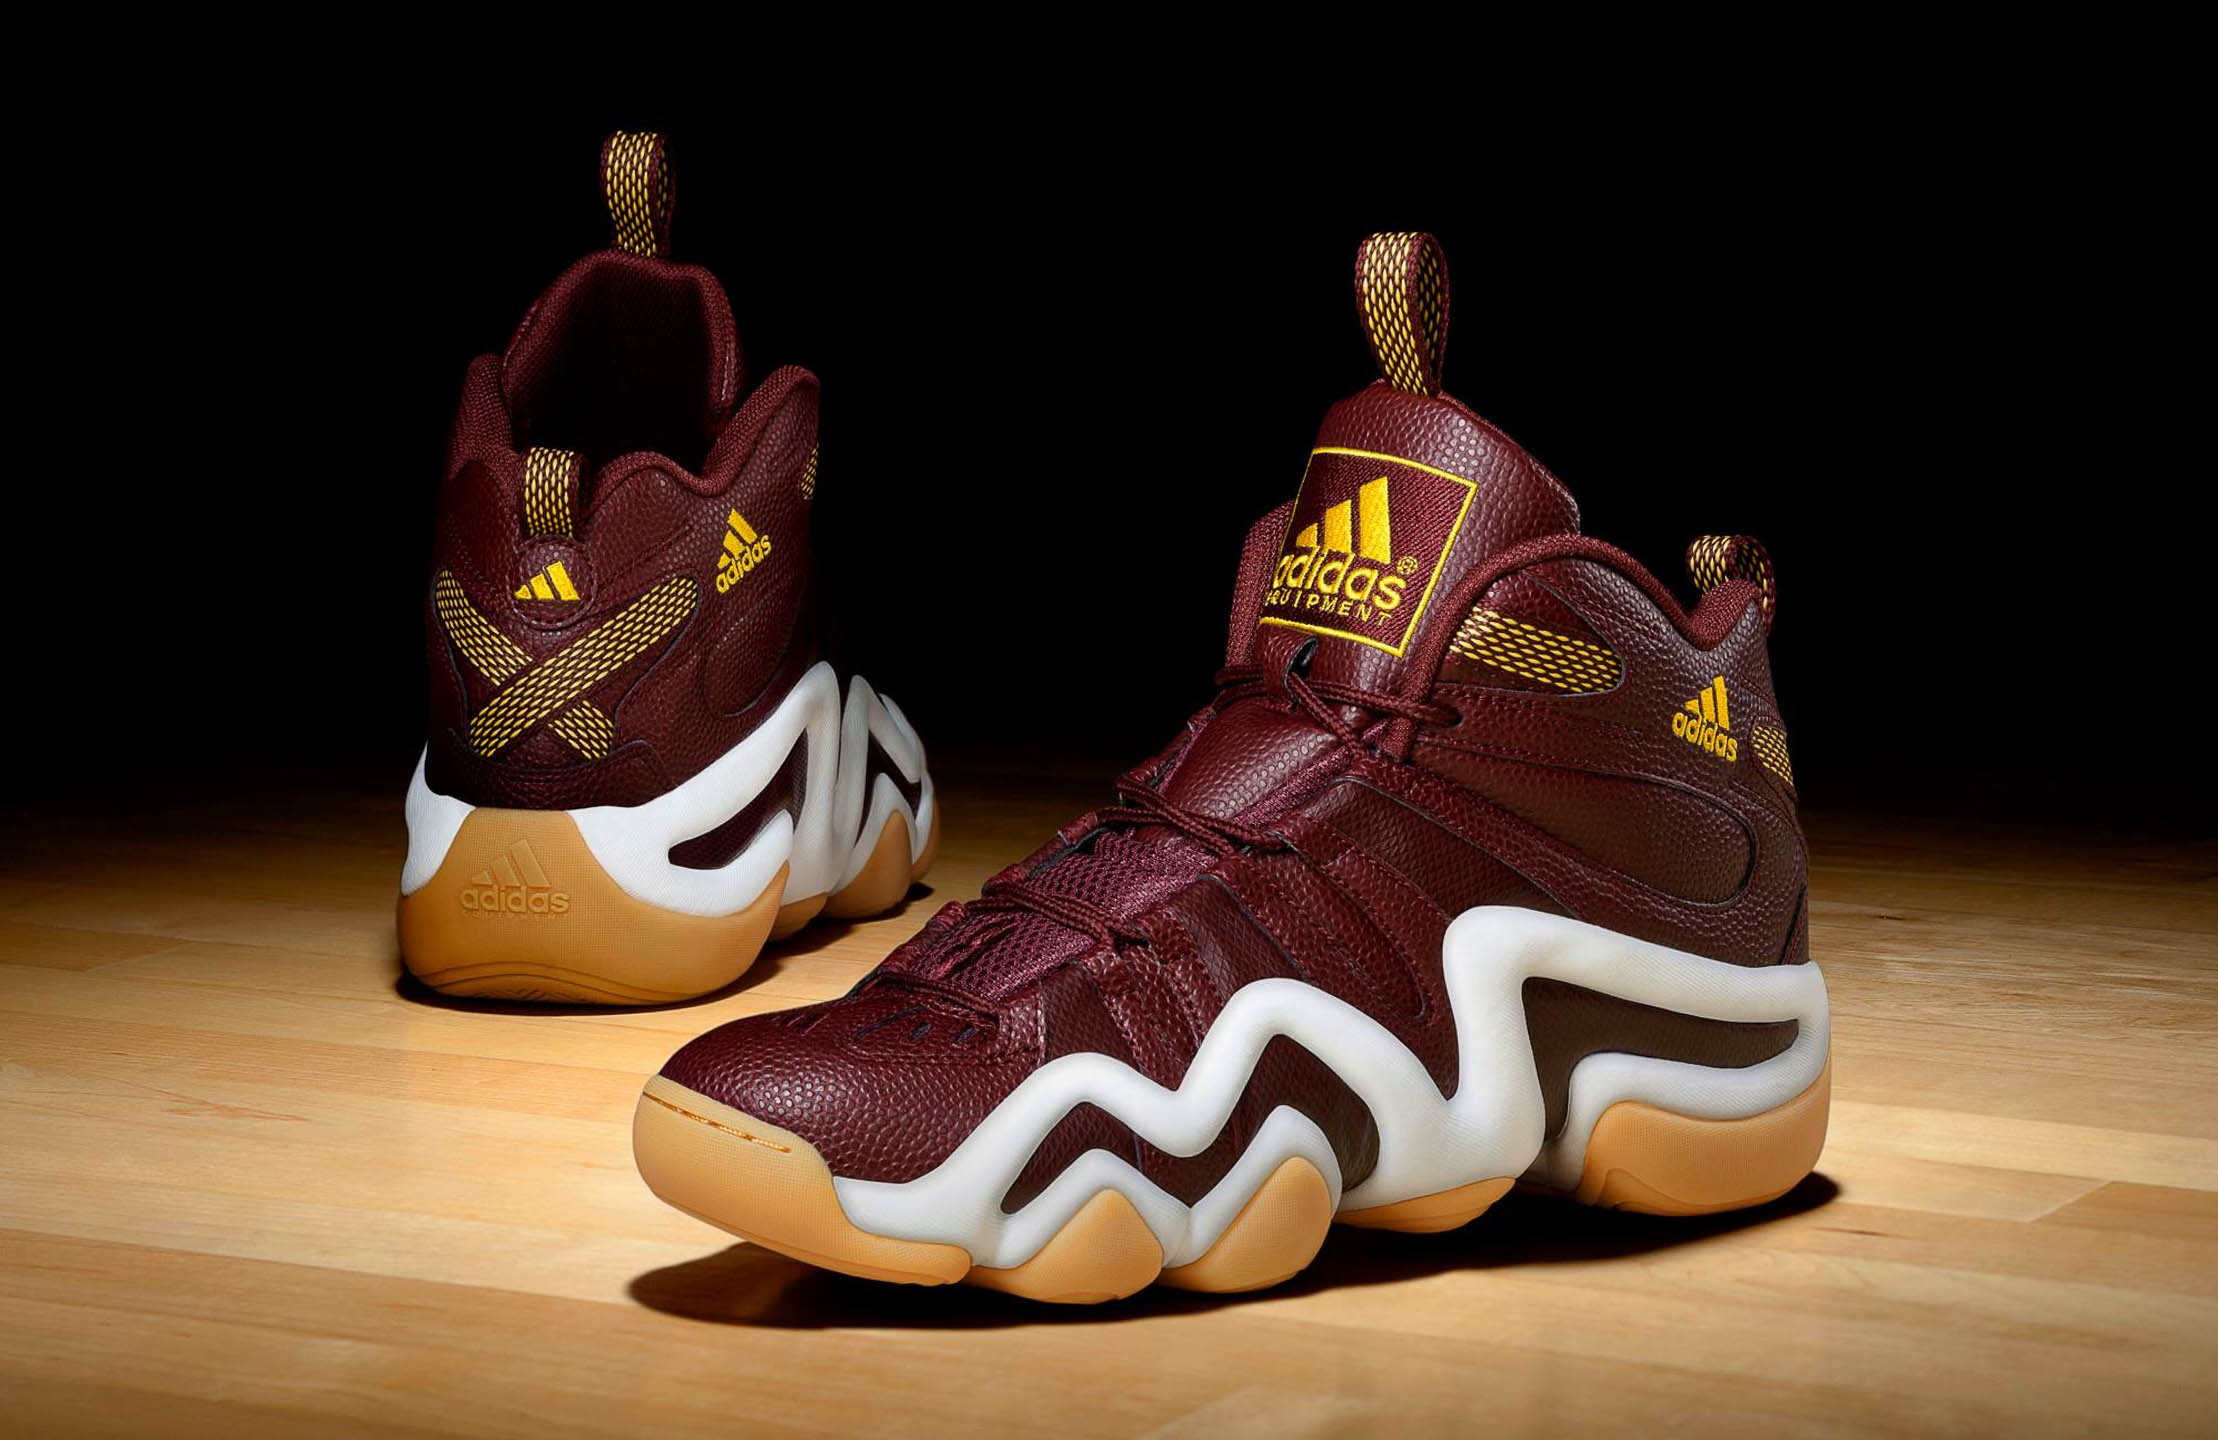 Adidas Crazy 8 basketball footwear